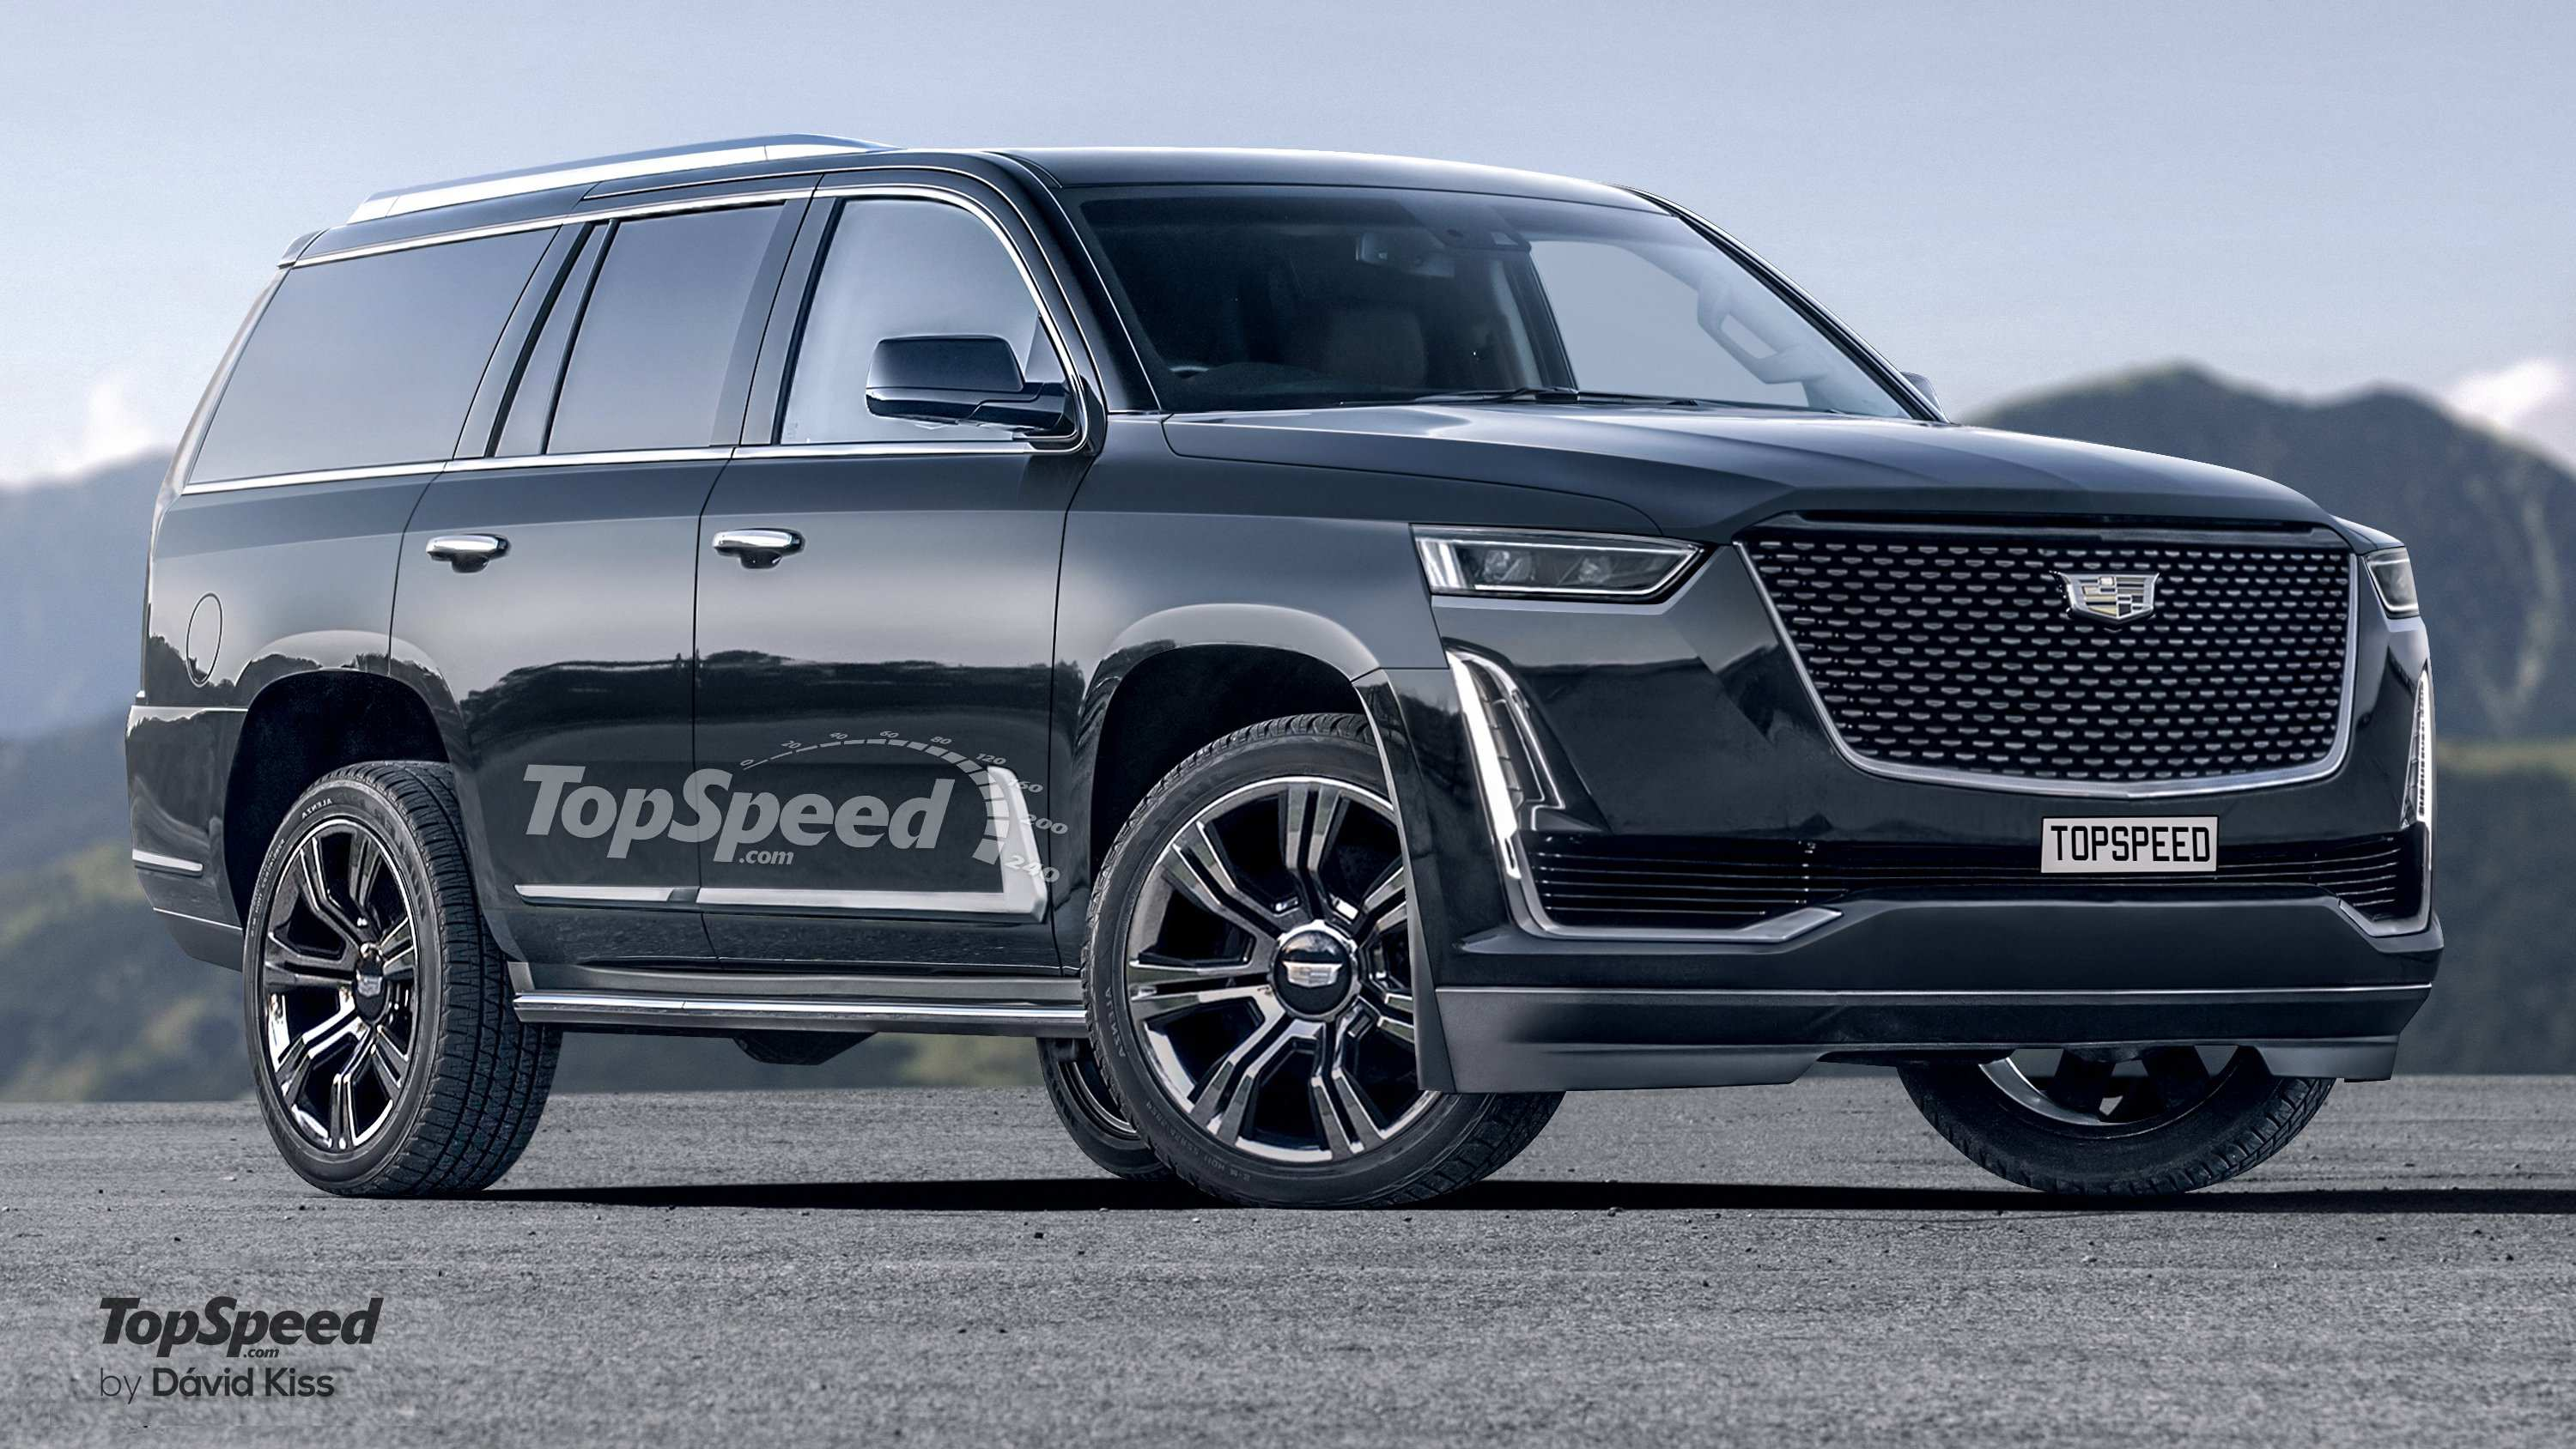 67 All New When Will The 2020 Cadillac Escalade Be Released Release for When Will The 2020 Cadillac Escalade Be Released